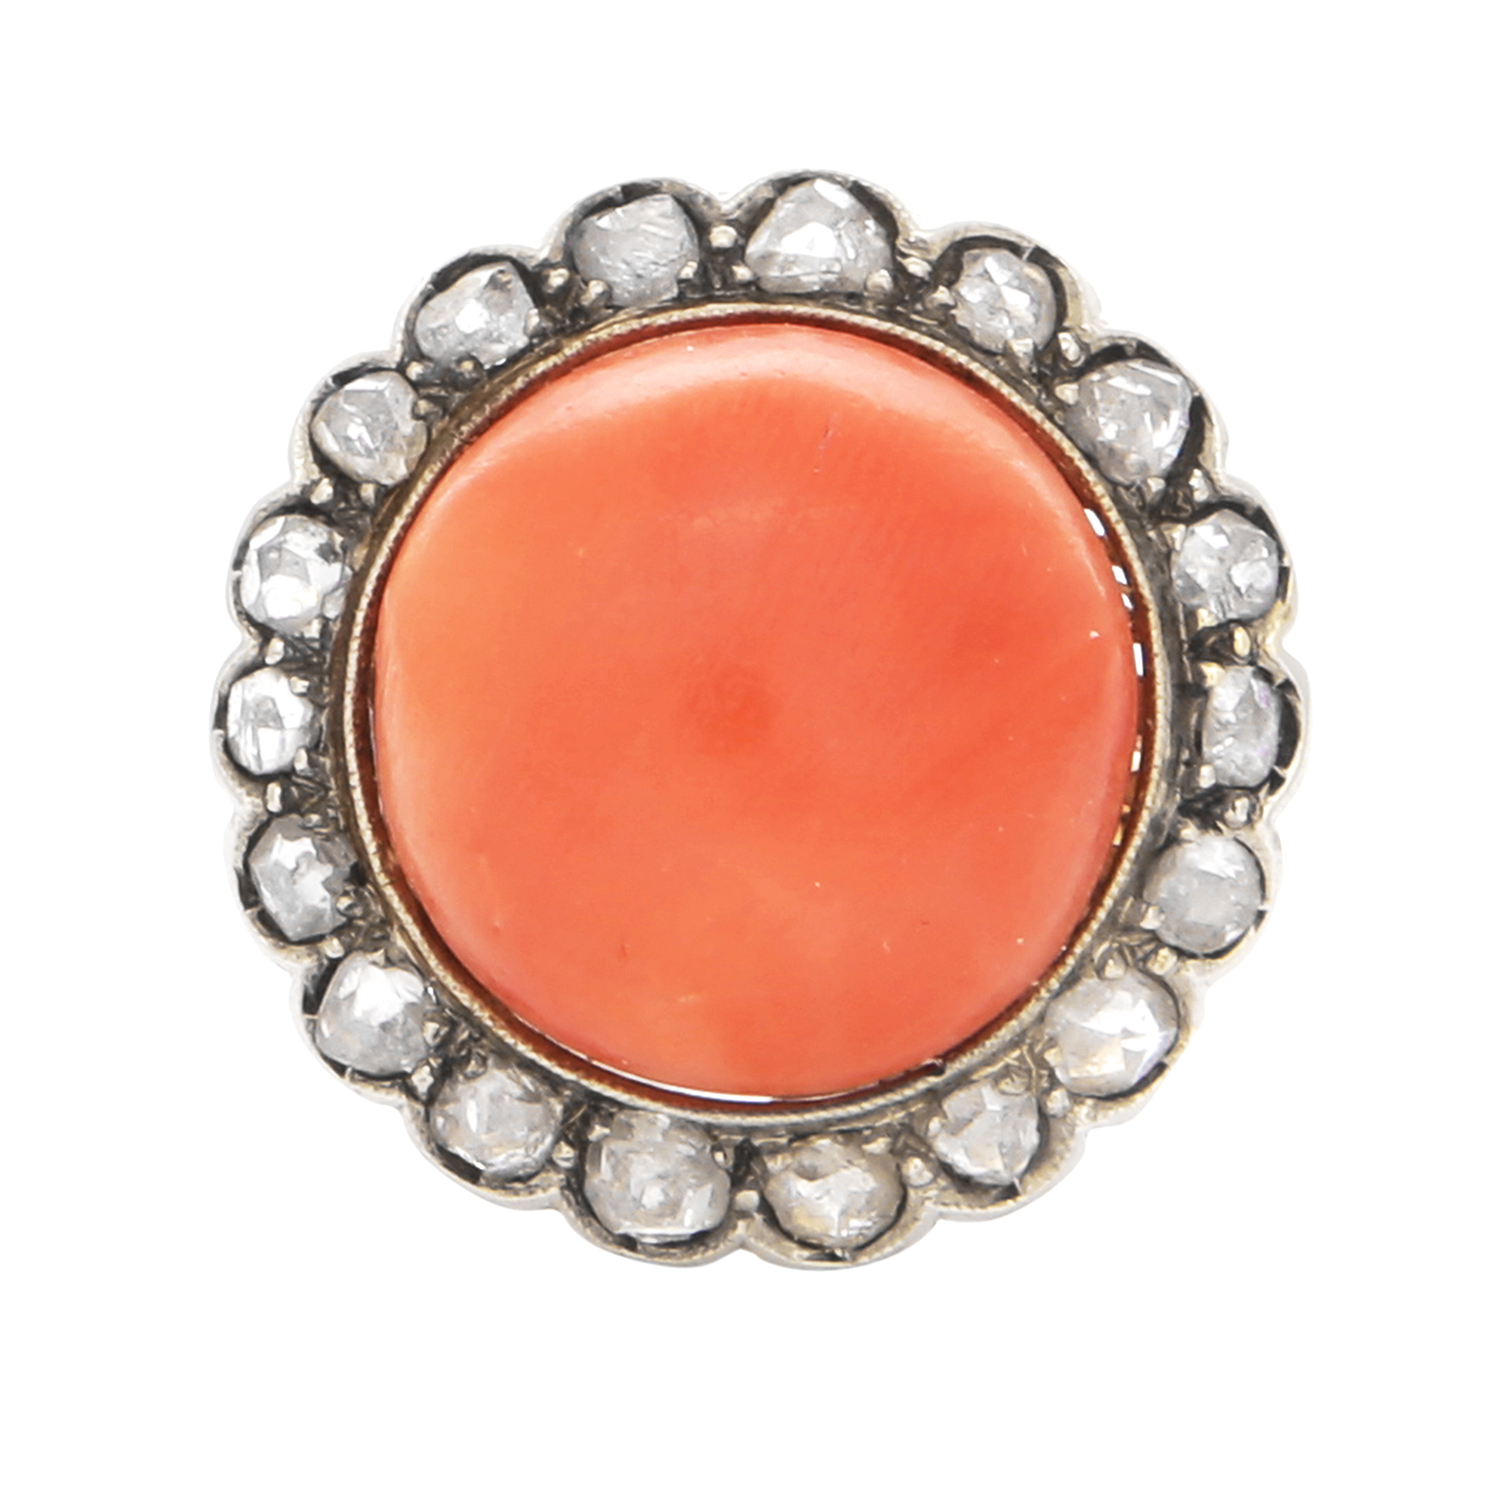 Los 46 - A CORAL AND DIAMOND DRESS RING, 19TH CENTURY in yellow gold, set with a central round coral cabochon